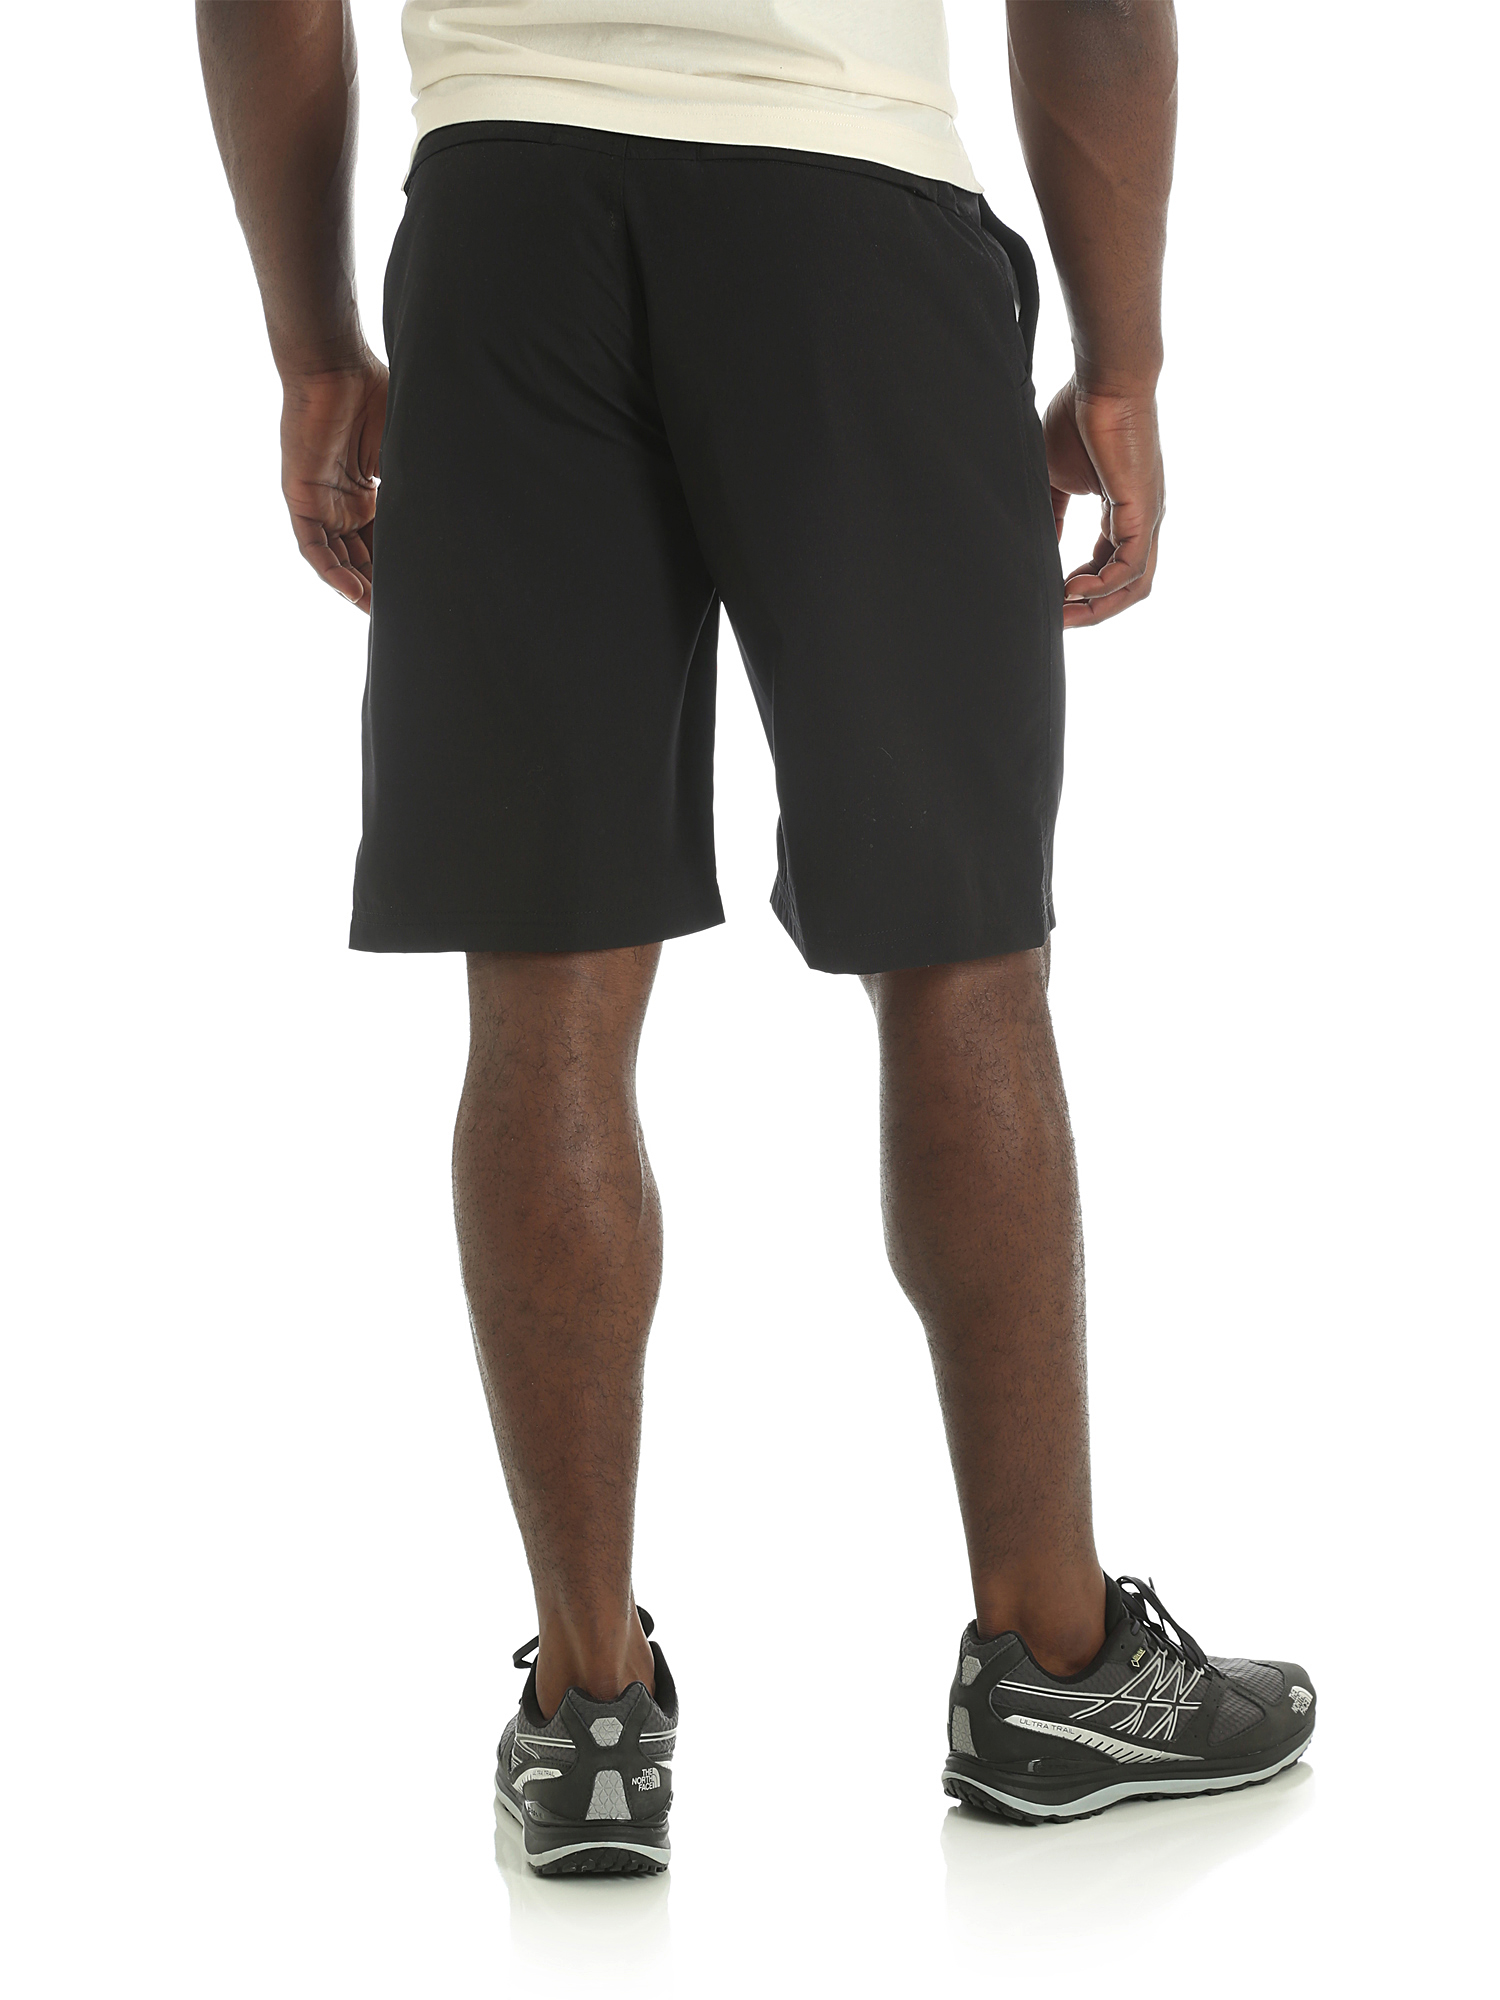 Wrangler-NEW-Solid-Men-039-s-Outdoor-Performance-Flex-Side-Elastic-Utility-Shorts thumbnail 3